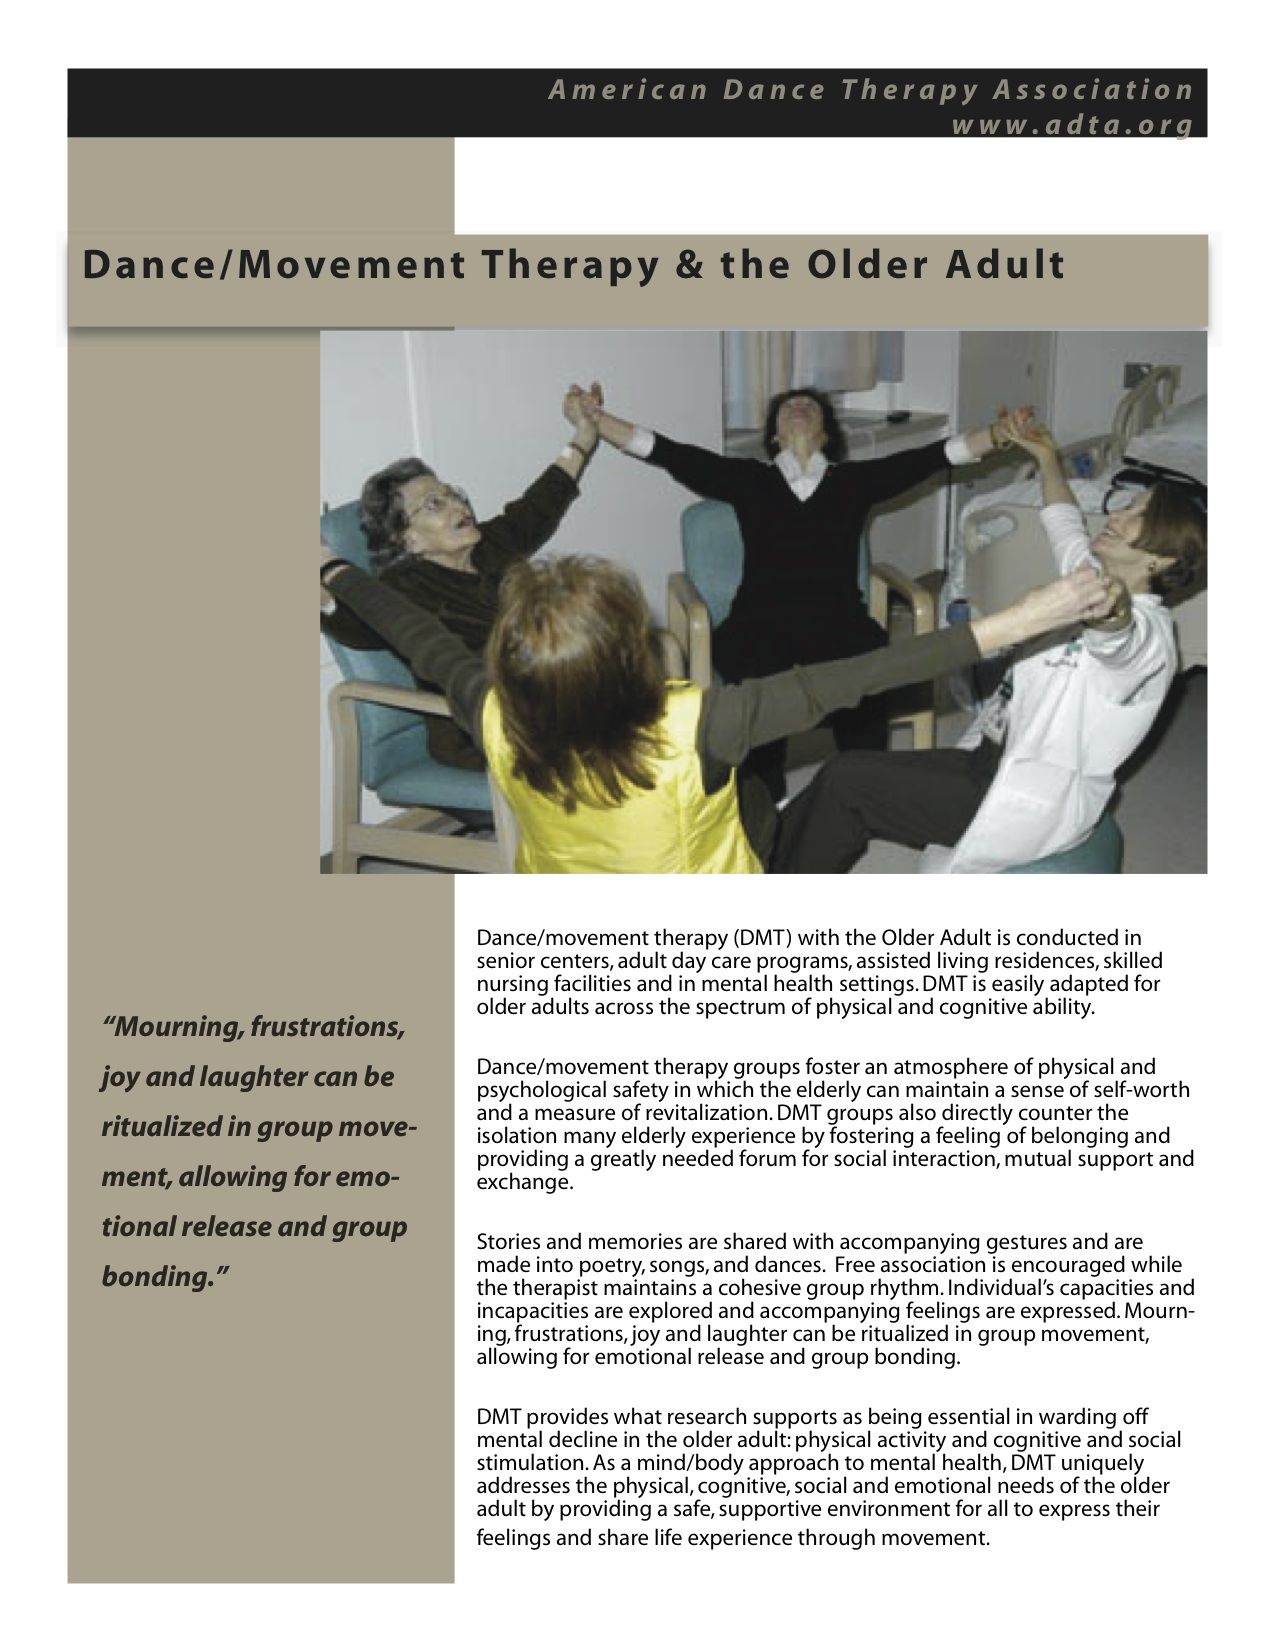 Dance/Movement Therapy with the Elderly www.adta.org #DanceTherapy  #DanceMovementTherapy #Elderly